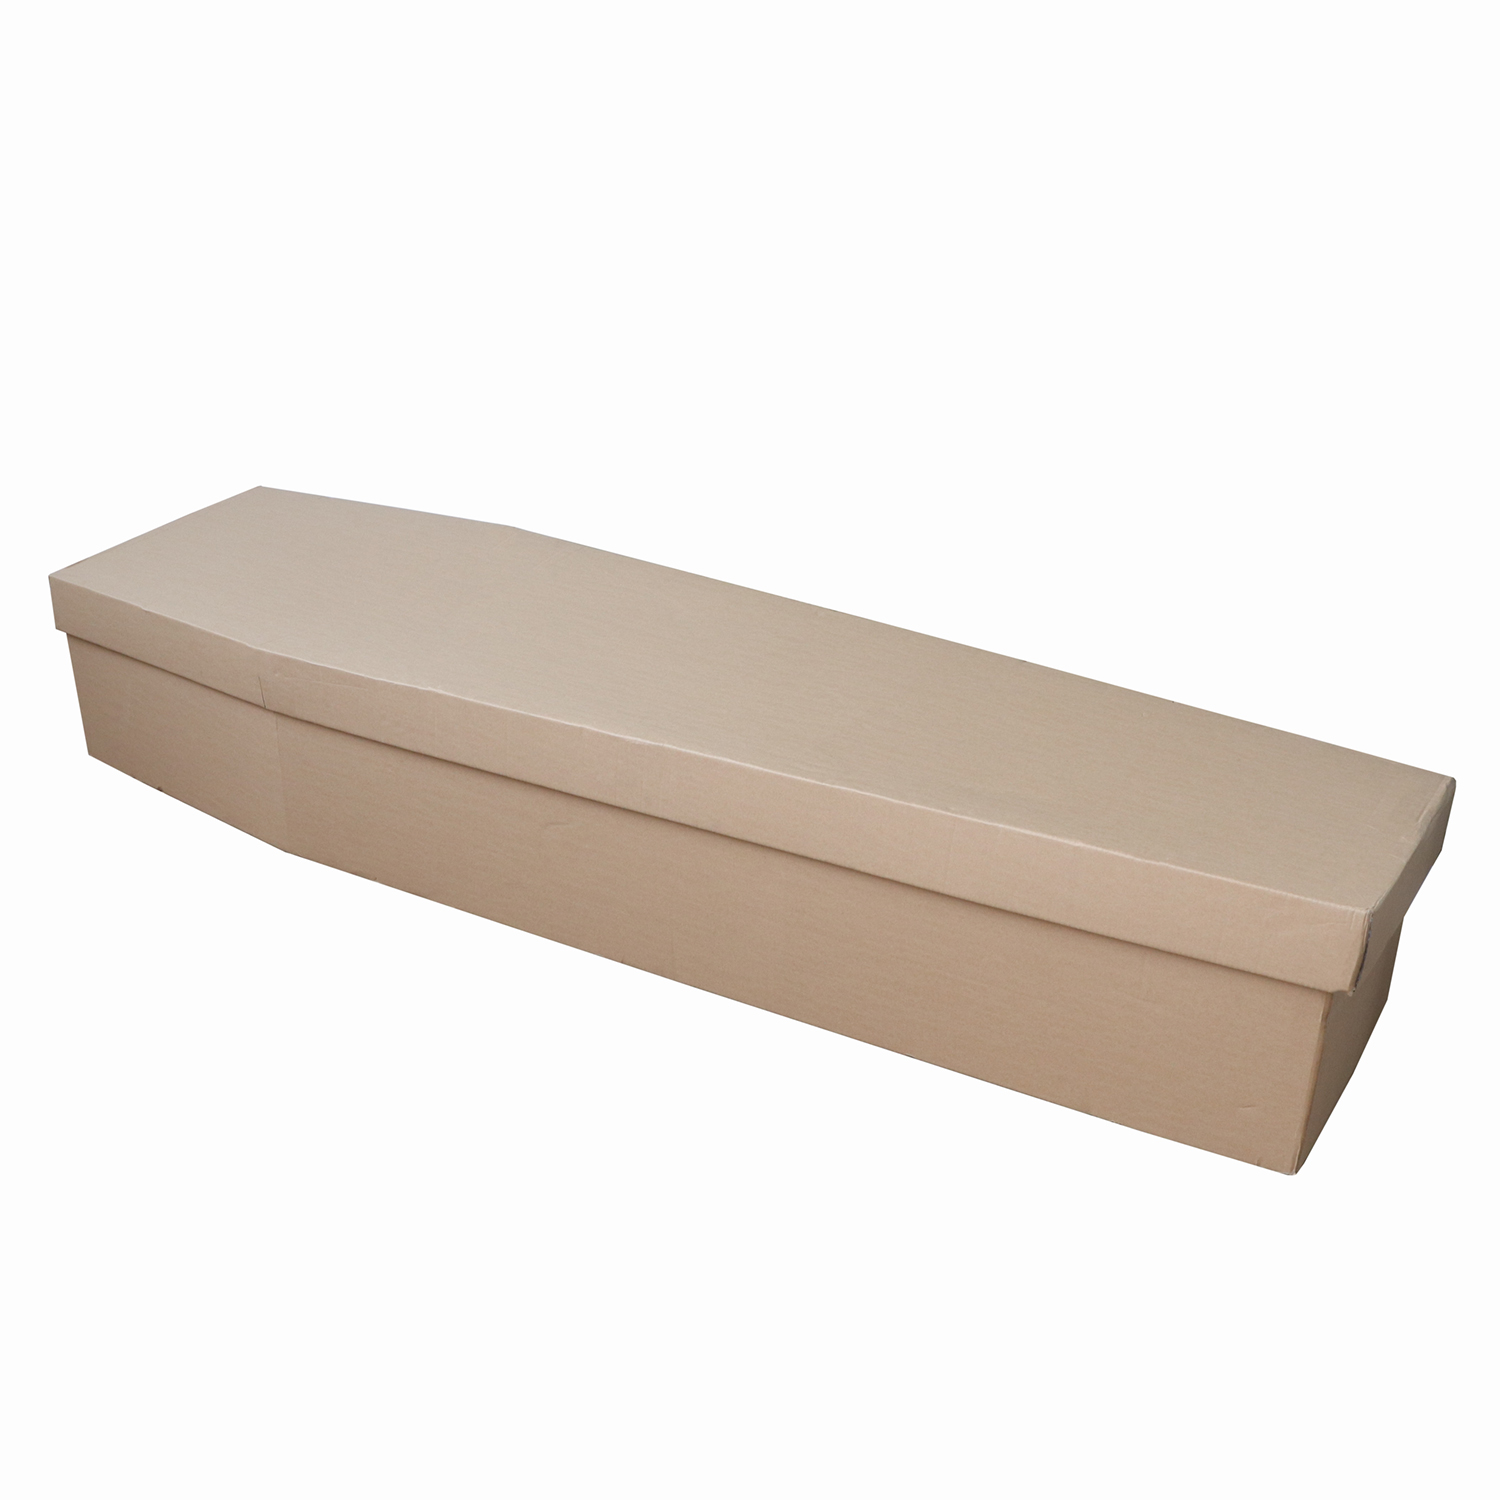 High quality paper cardboard coffin with good price